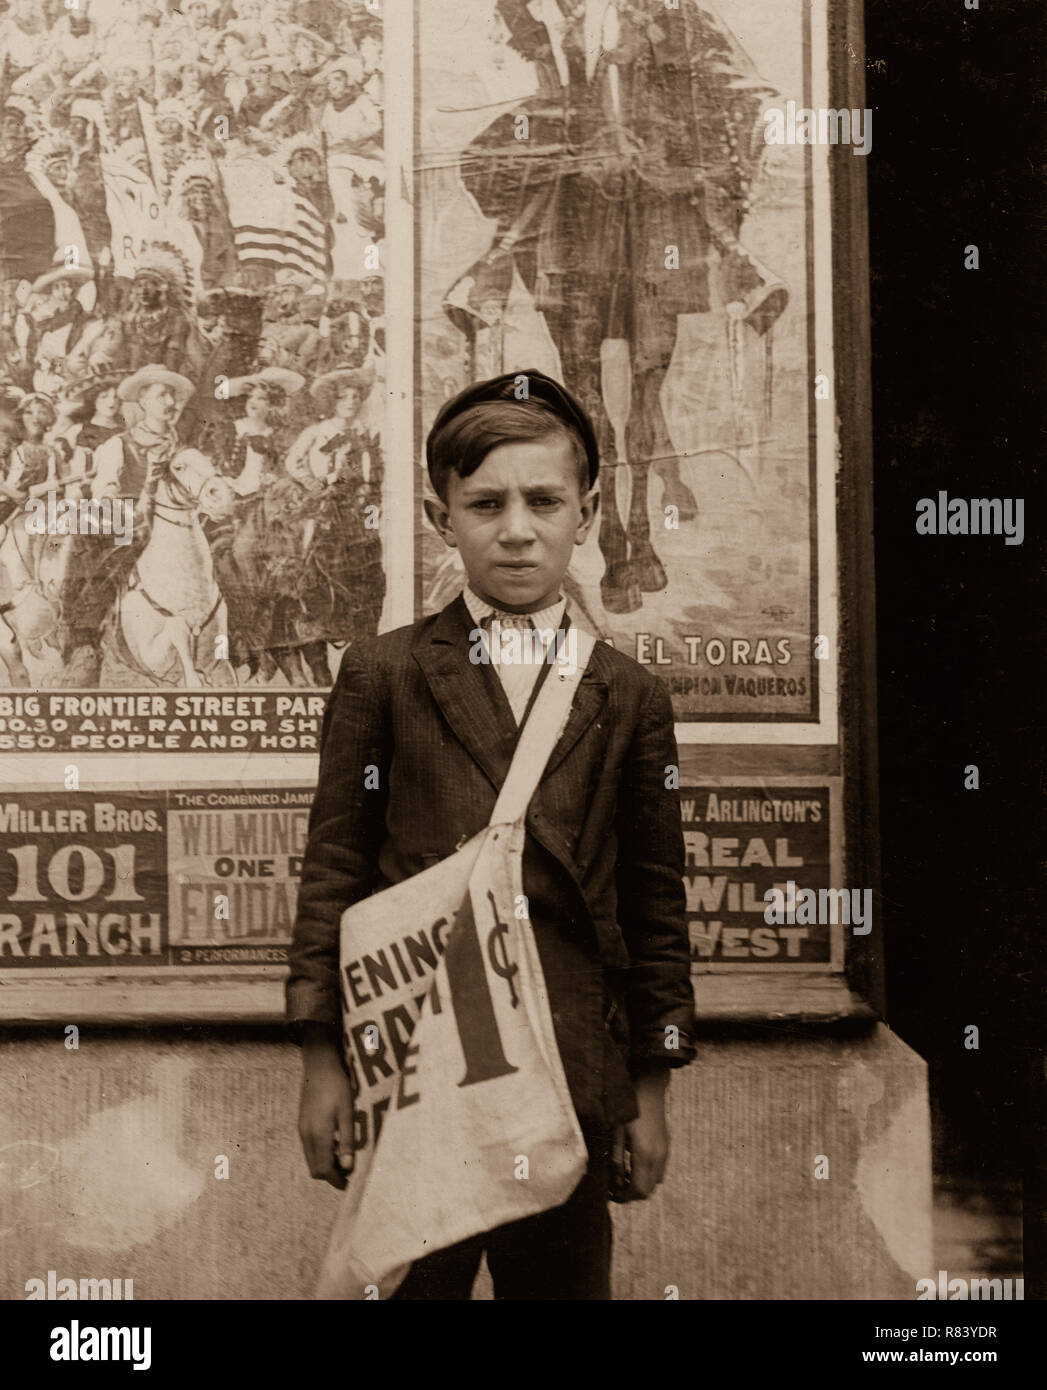 TITLE:  S. Russell, 33 E. 22nd St. Newsboy, 12 years of age. Selling newspapers 2 years. Average earnings 20 cents daily. Selling newspapers own choice. Father earns $18 weekly. Boy deposits earnings in du Pont Savings Bank, and on Saturday night works for Reynold's candy shop, delivering packages. Don't smoke. Visits saloons. Works 5 hours daily, except Saturday, when he works 11. Location: Wilmington, Delaware.  CALL NUMBER:  LOT 7480, v. 2, no. 1511[P&P]   Check for an online group record (may link to related items)  REPRODUCTION NUMBER:  LC-DIG-nclc-03574 (color digital file from b&w origi - Stock Image